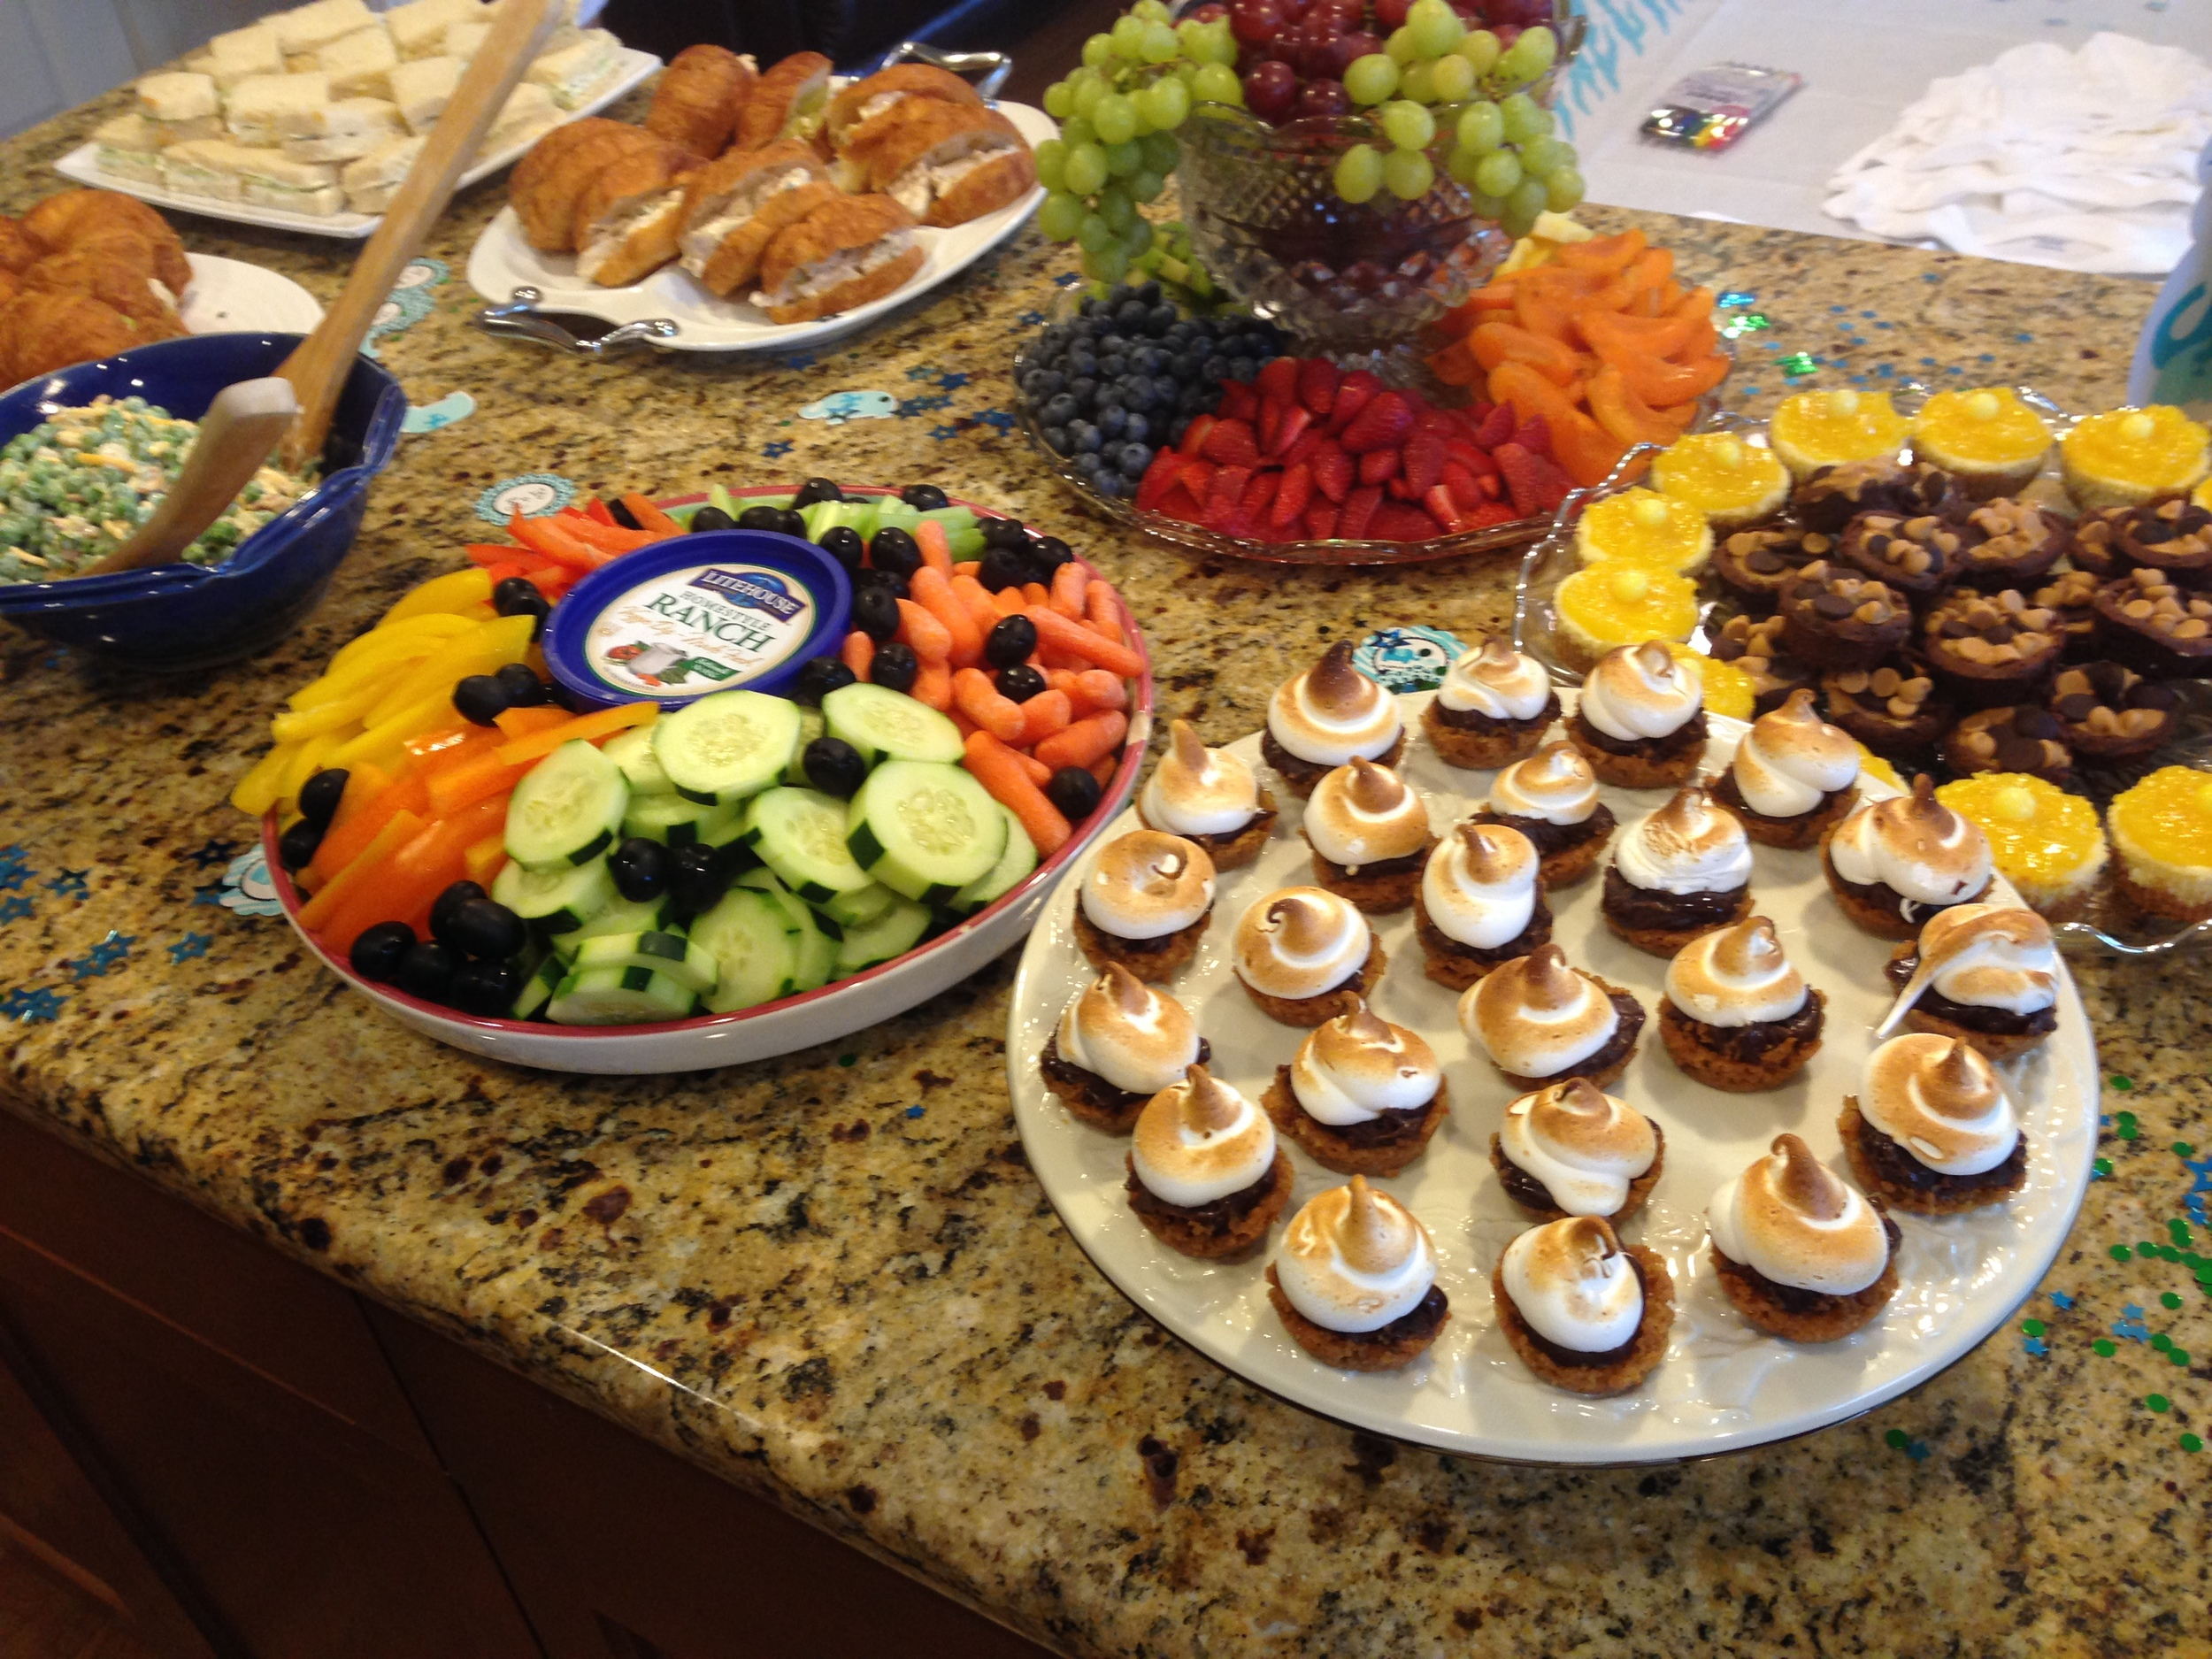 The beautiful buffet spread for the baby shower.